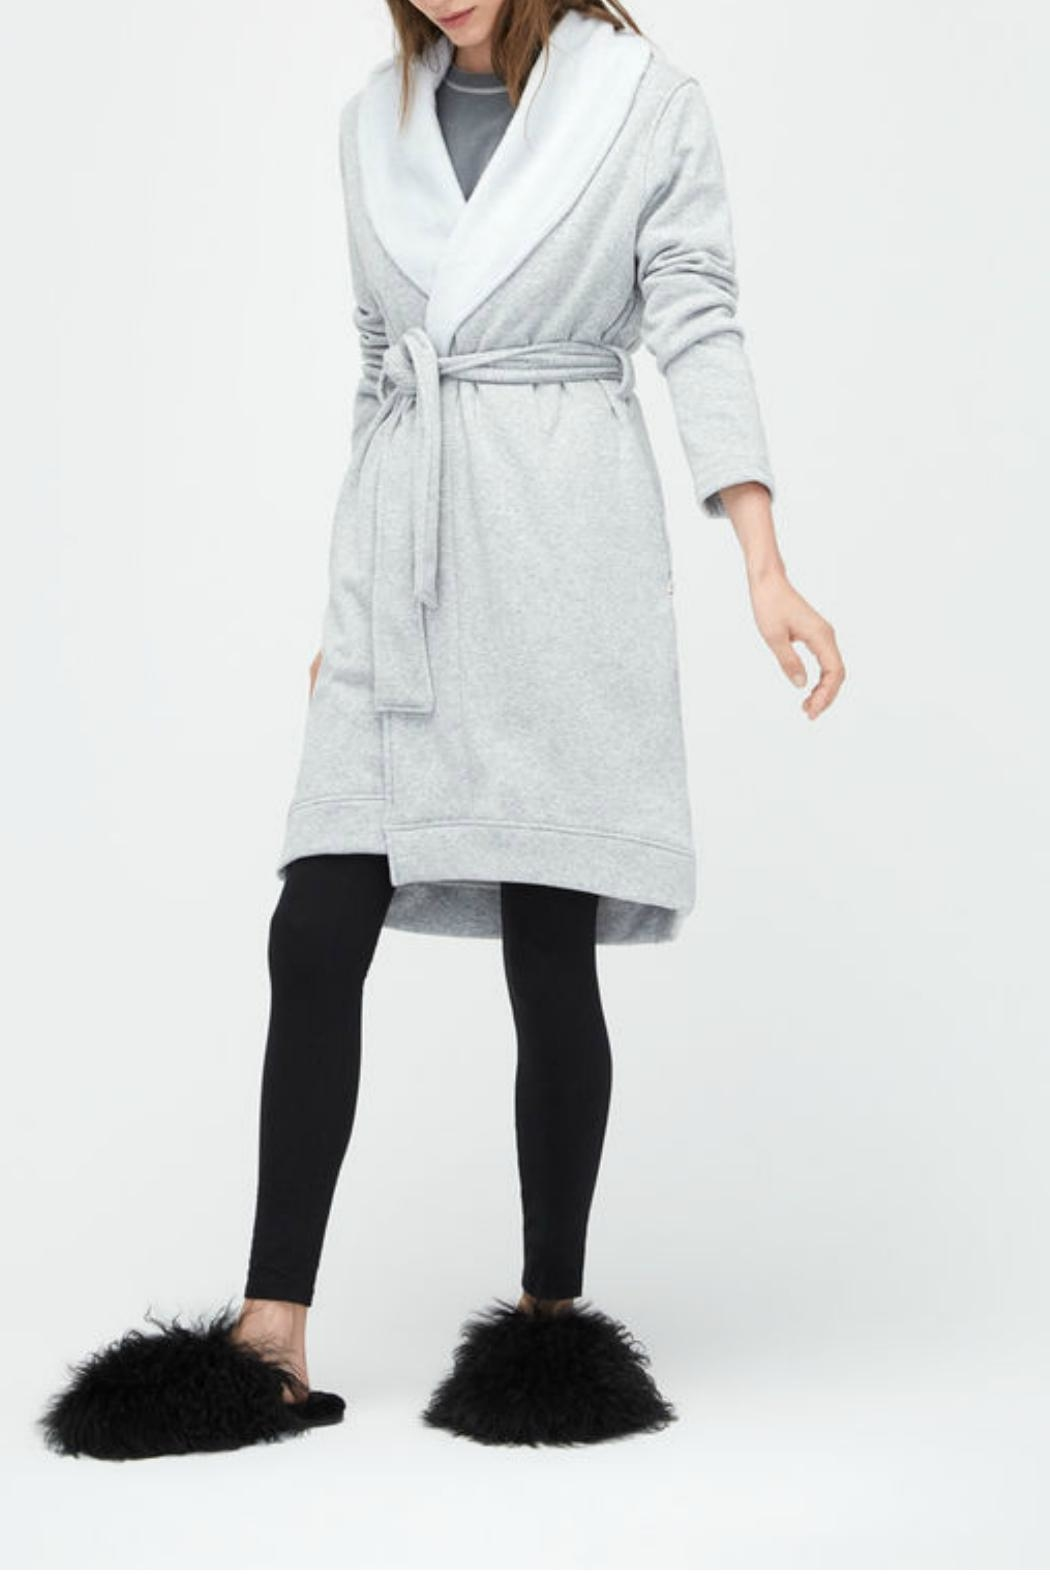 UGG Australia Ugg Blanche Robe from Rhode Island by Soap Water ... dbbe8223d